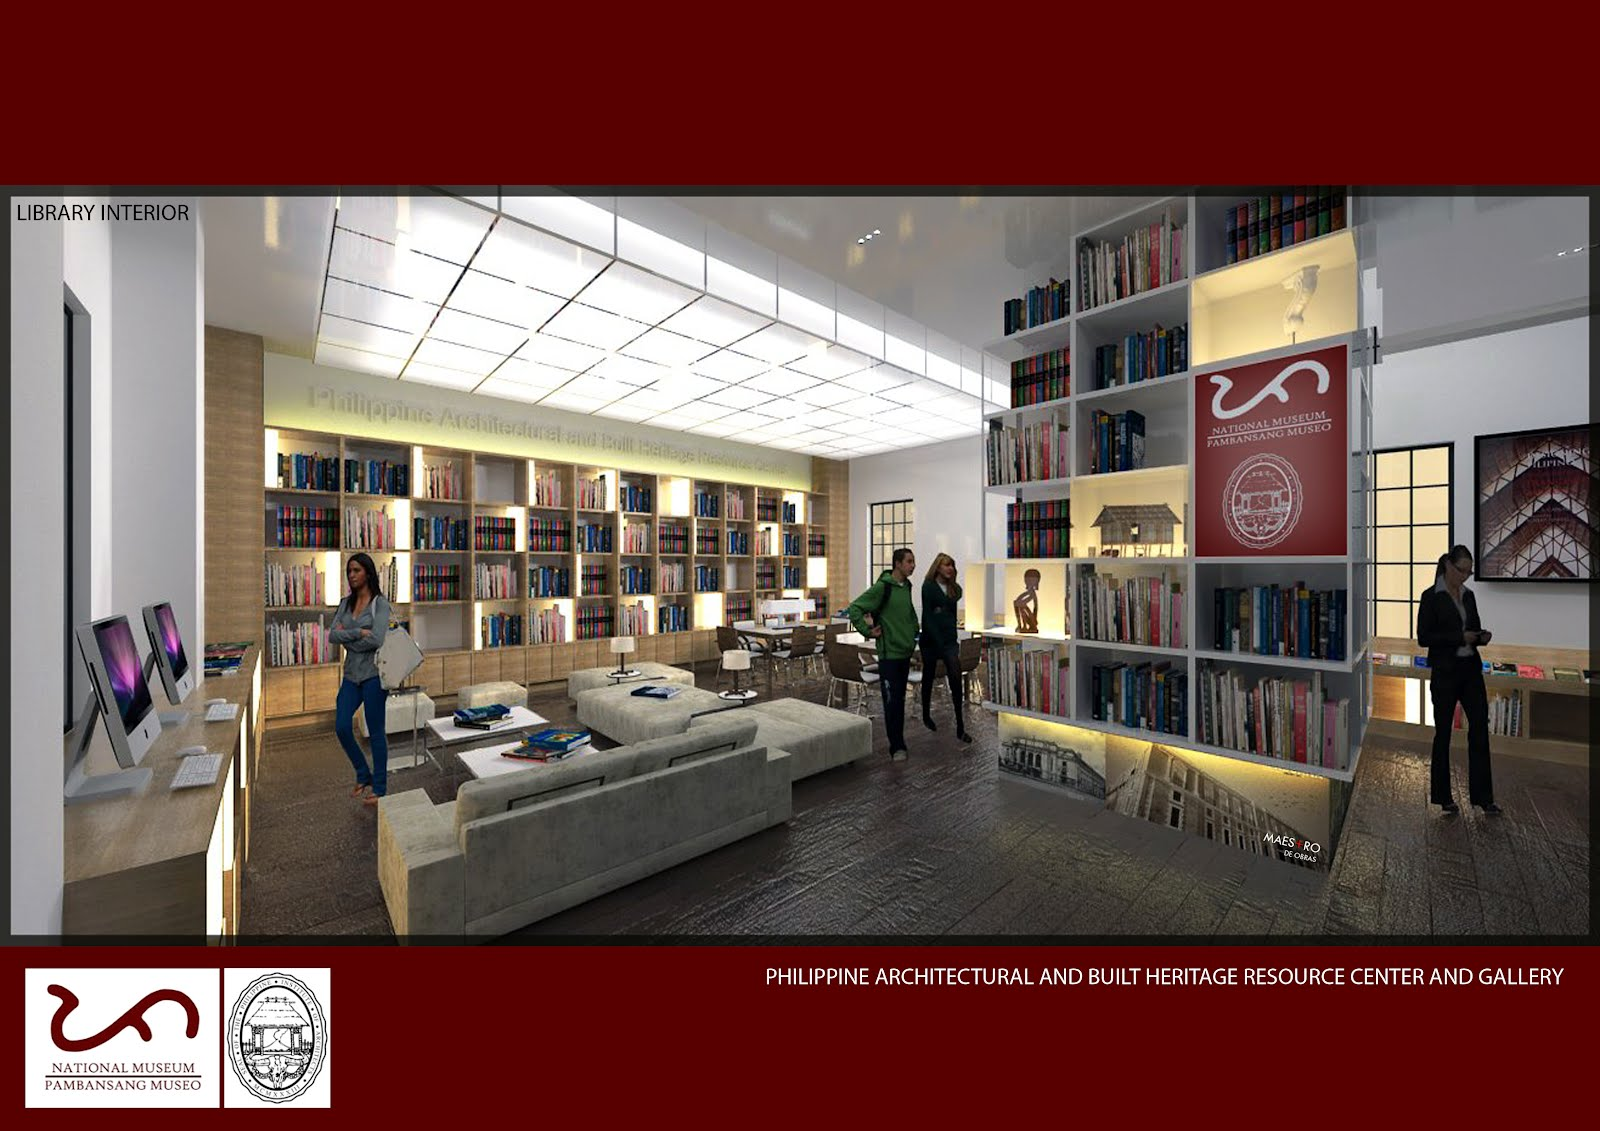 The Proposed Interior Layout Of Philippine Architectural Gallery And Built Heritage Resource Center At National Museum Philippines In 2013